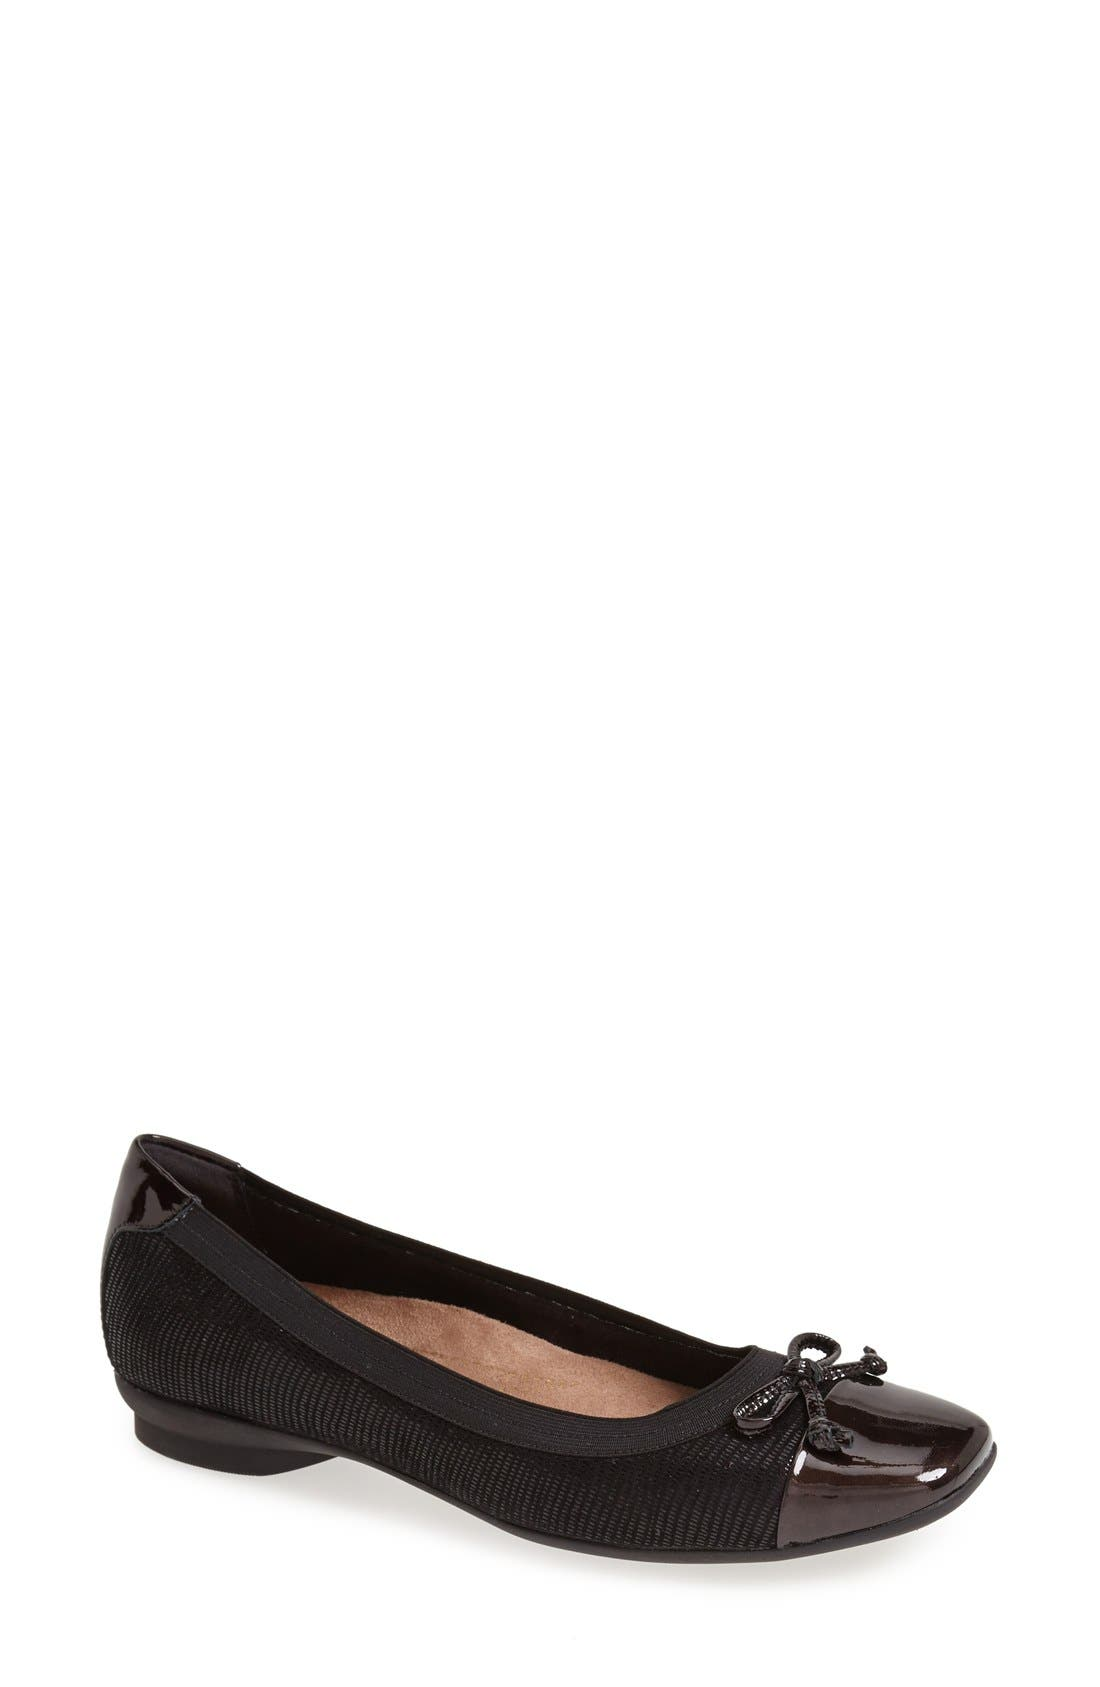 'Candra Glow' Flat,                             Main thumbnail 1, color,                             Black Suede